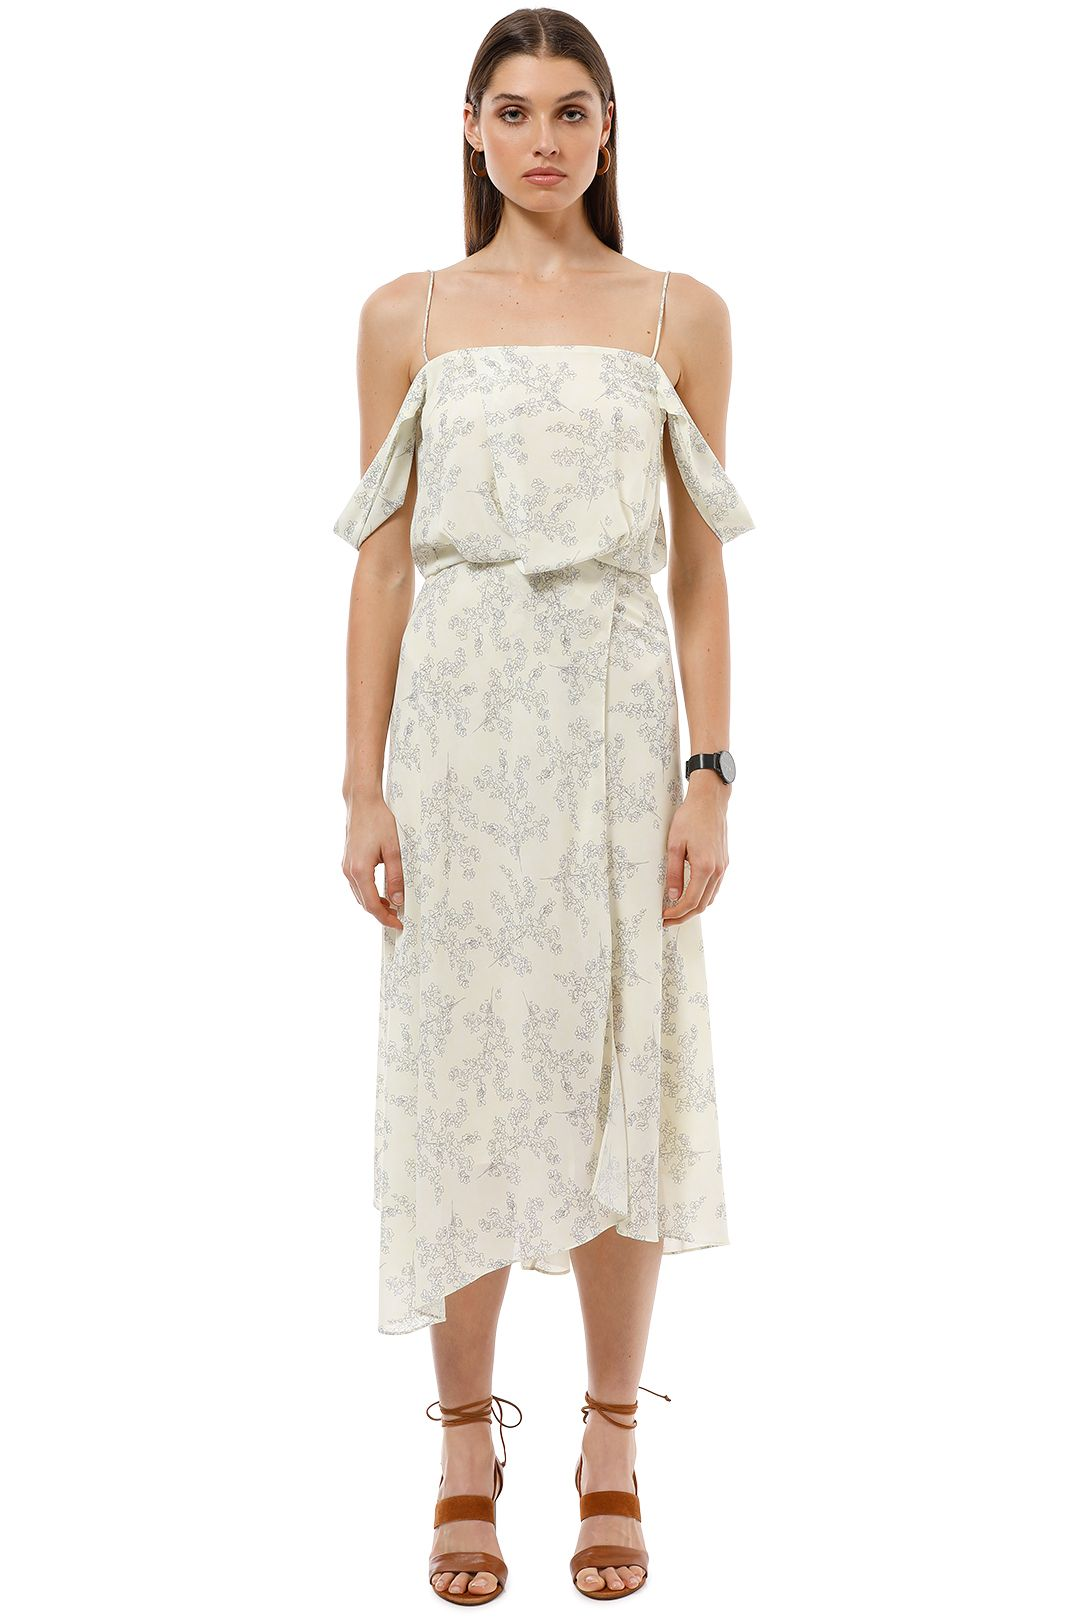 Camilla and Marc - Lucia Midi Dress - Cream - Front